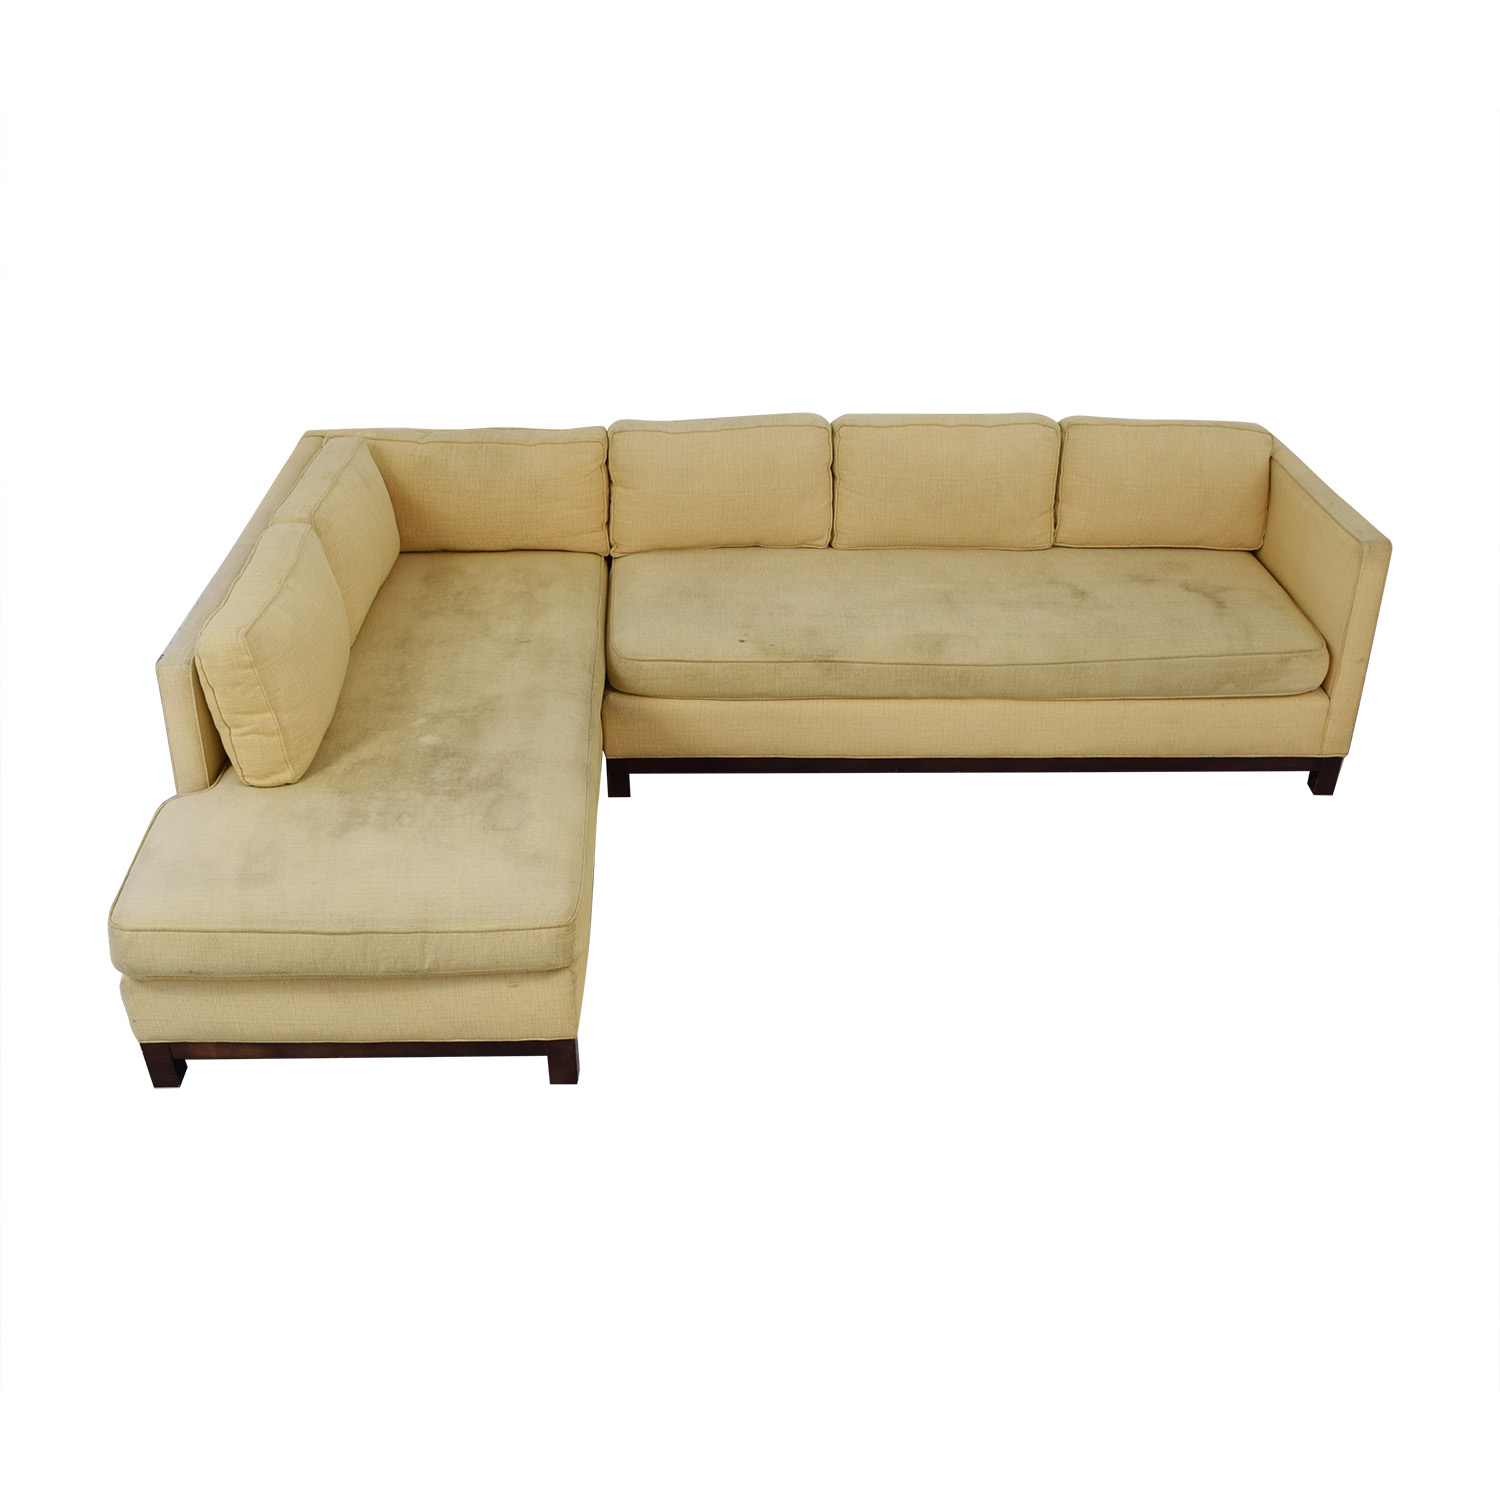 shop Mitchell Gold + Bob Williams Clifton Chaise Sectional Sofa Mitchell Gold + Bob Williams